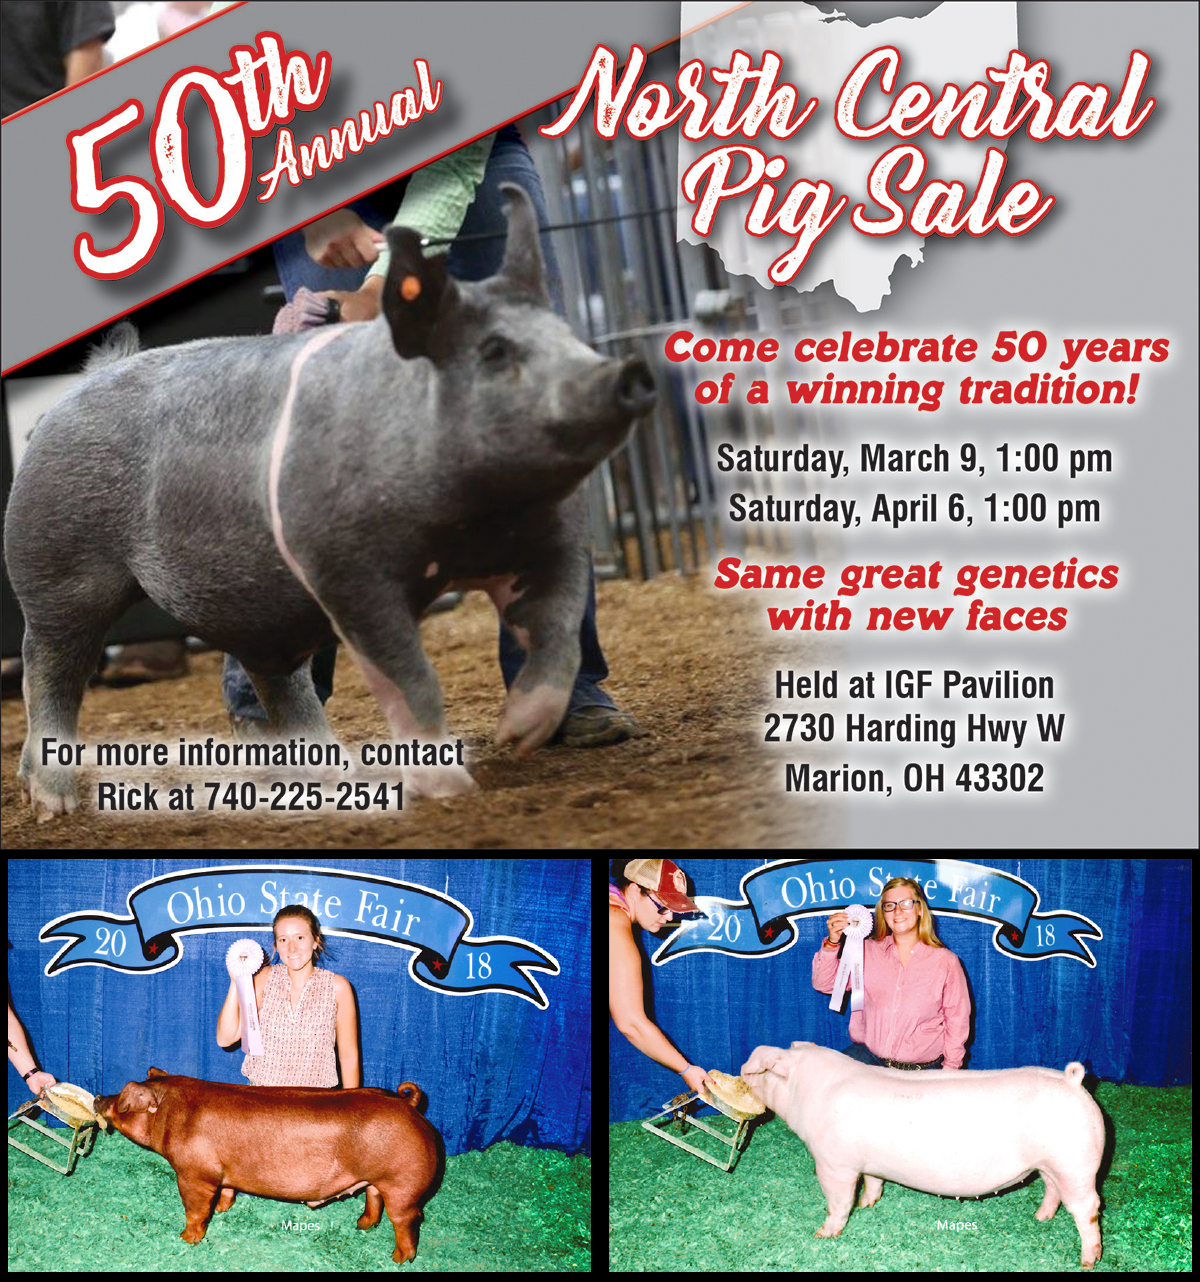 50th Annual North Central Pig Sales